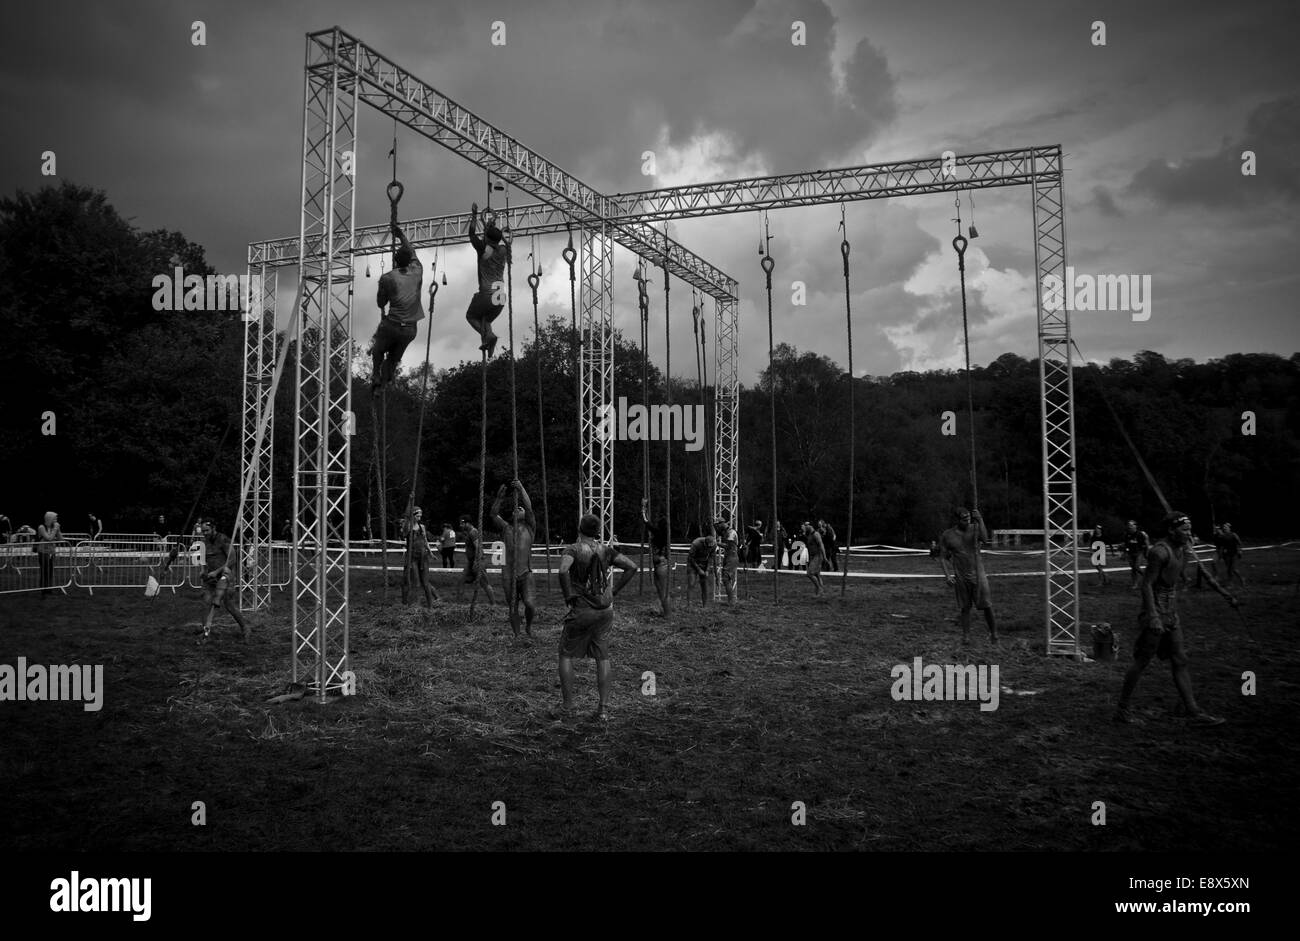 Participants battle against the elements in 2014 Spartan Race  Beast  -  Stock Image 6fe9779edcaf